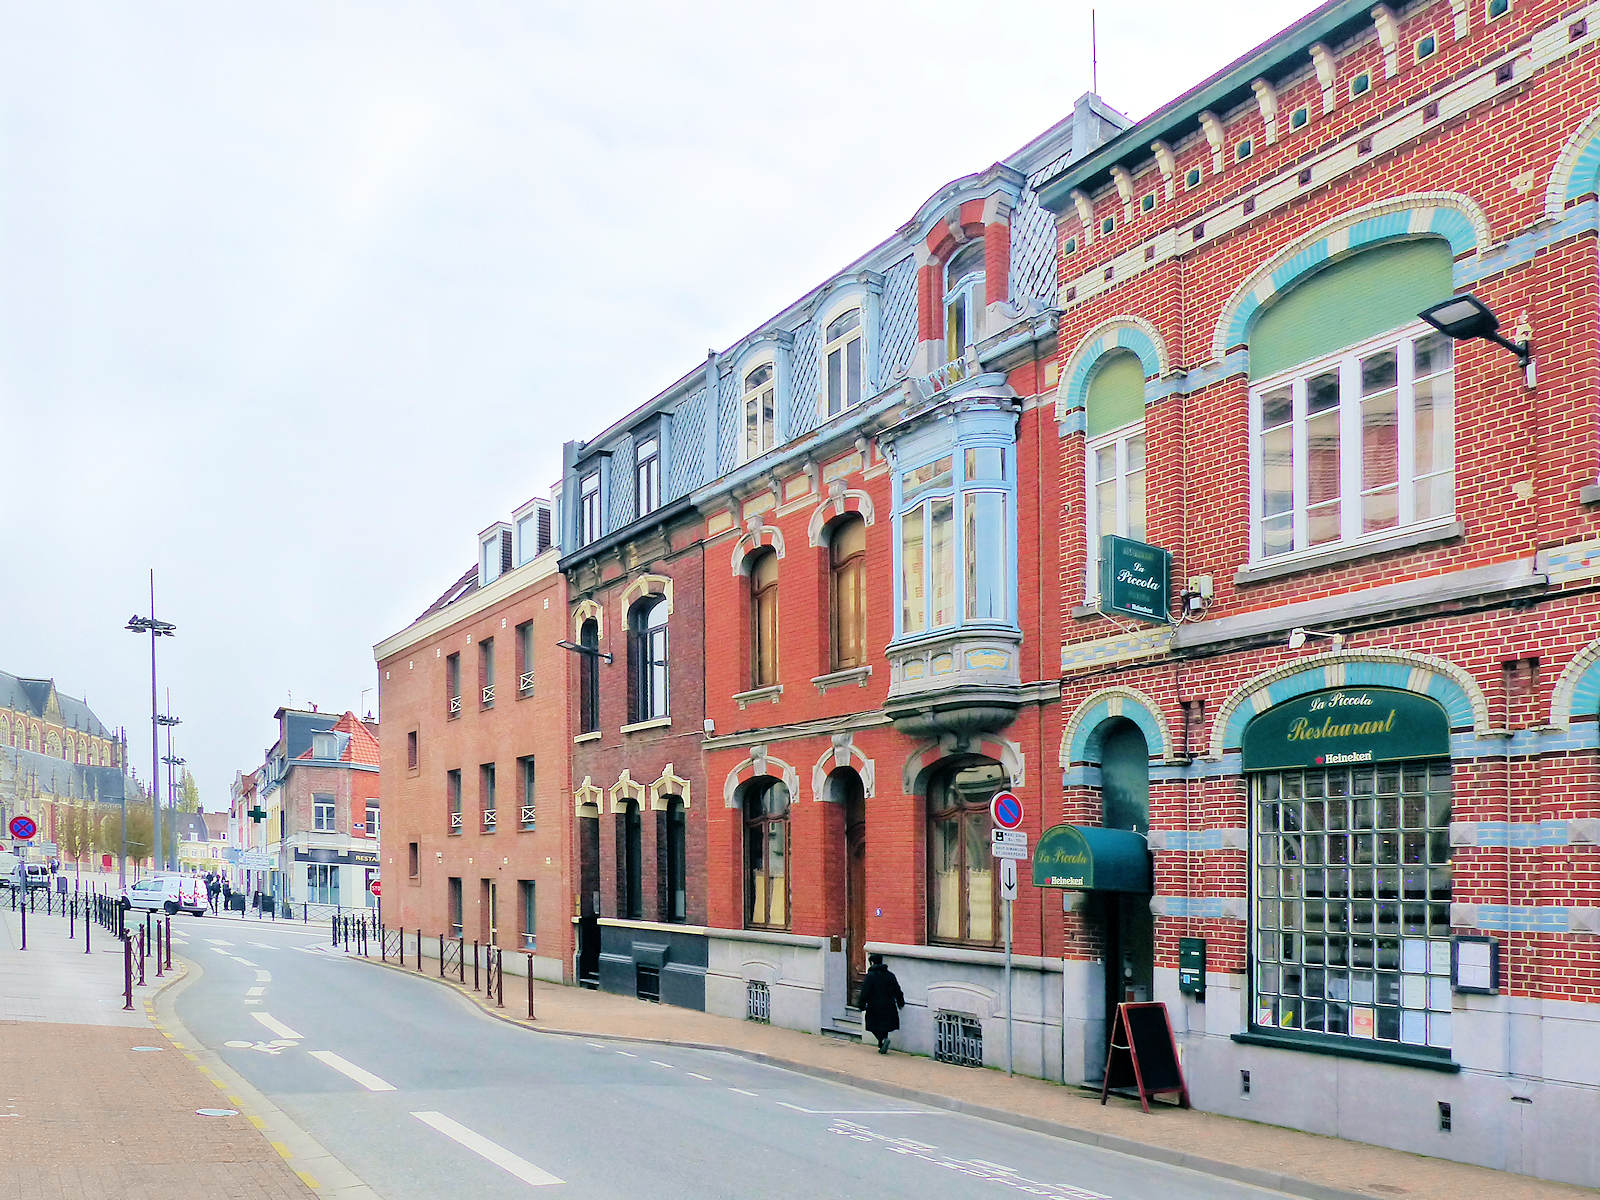 Rue des anges - Tourcoing, Tourcoing centre